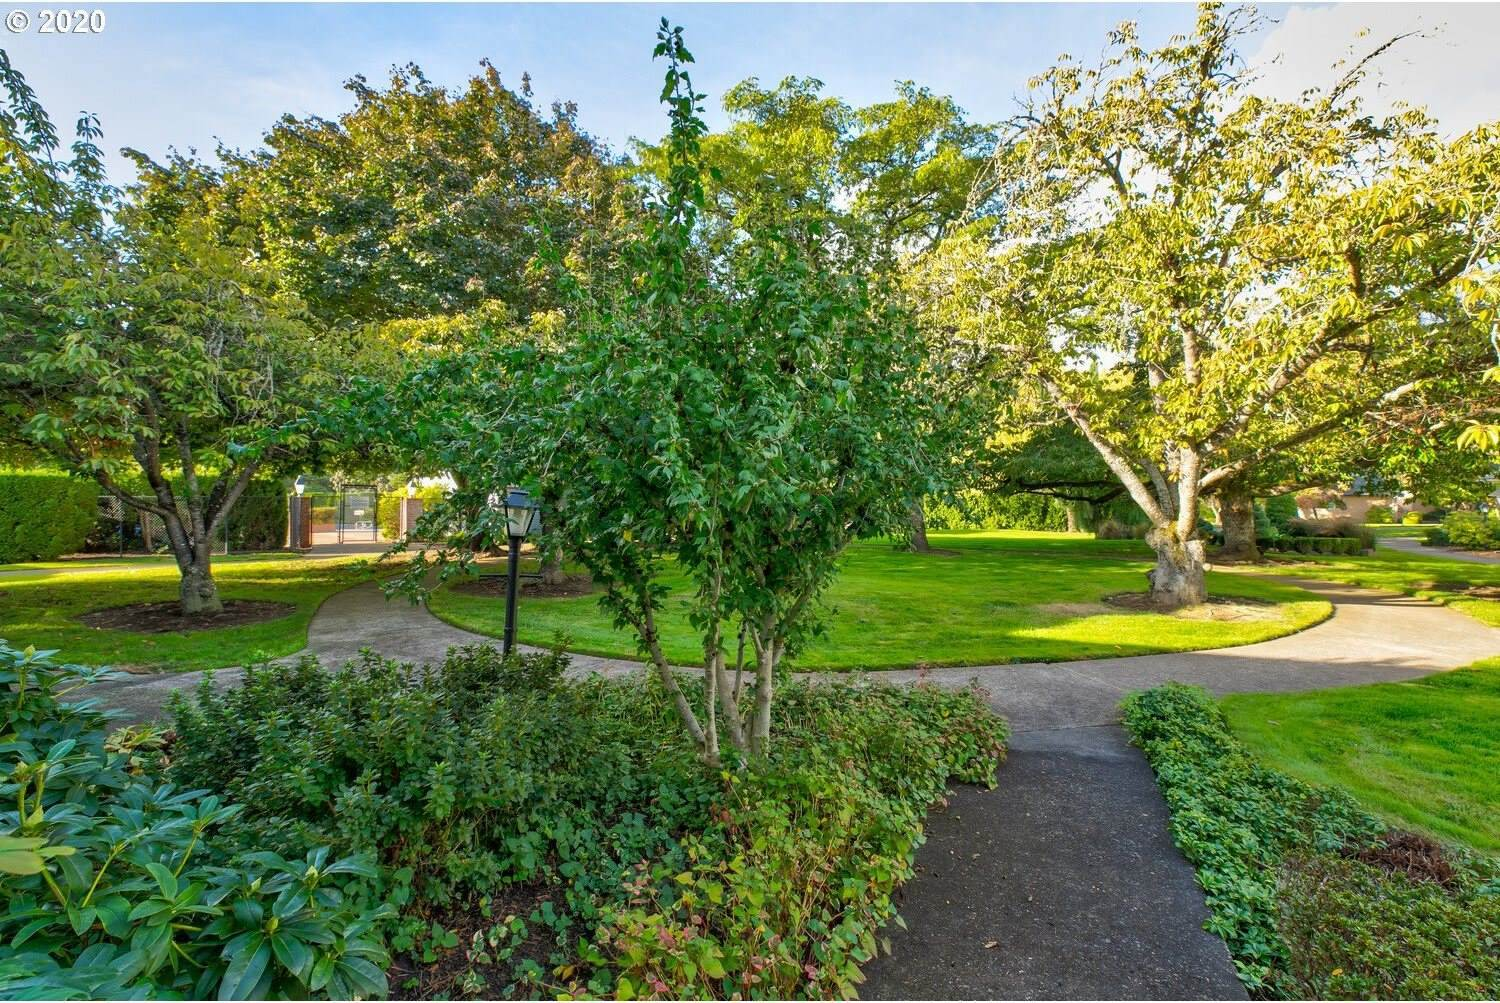 1594 NW 143RD Ave, Portland, OR 97229